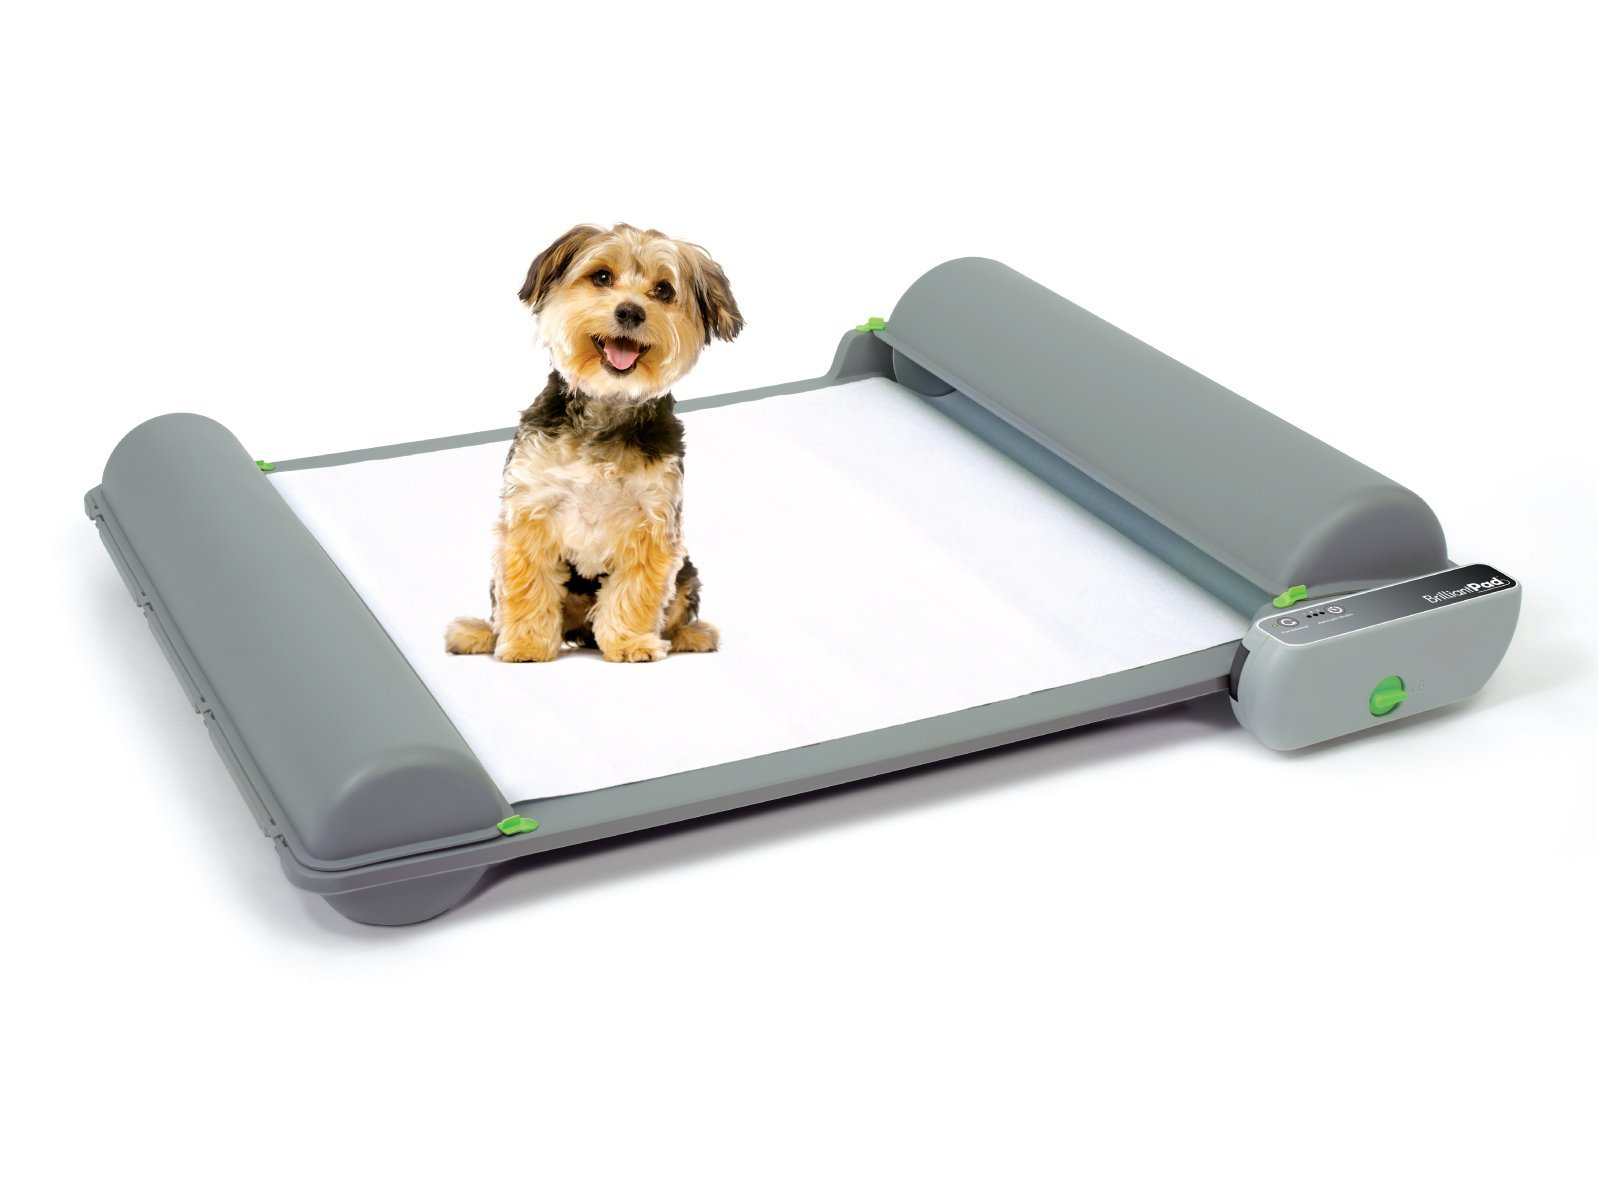 BrilliantPad Self-Cleaning, Automatic Indoor Dog Potty (MACHINE ONLY, MUST BUY ROLLS SEPARATELY, 50% OFF 2-PACK PROMO AVAILABLE)